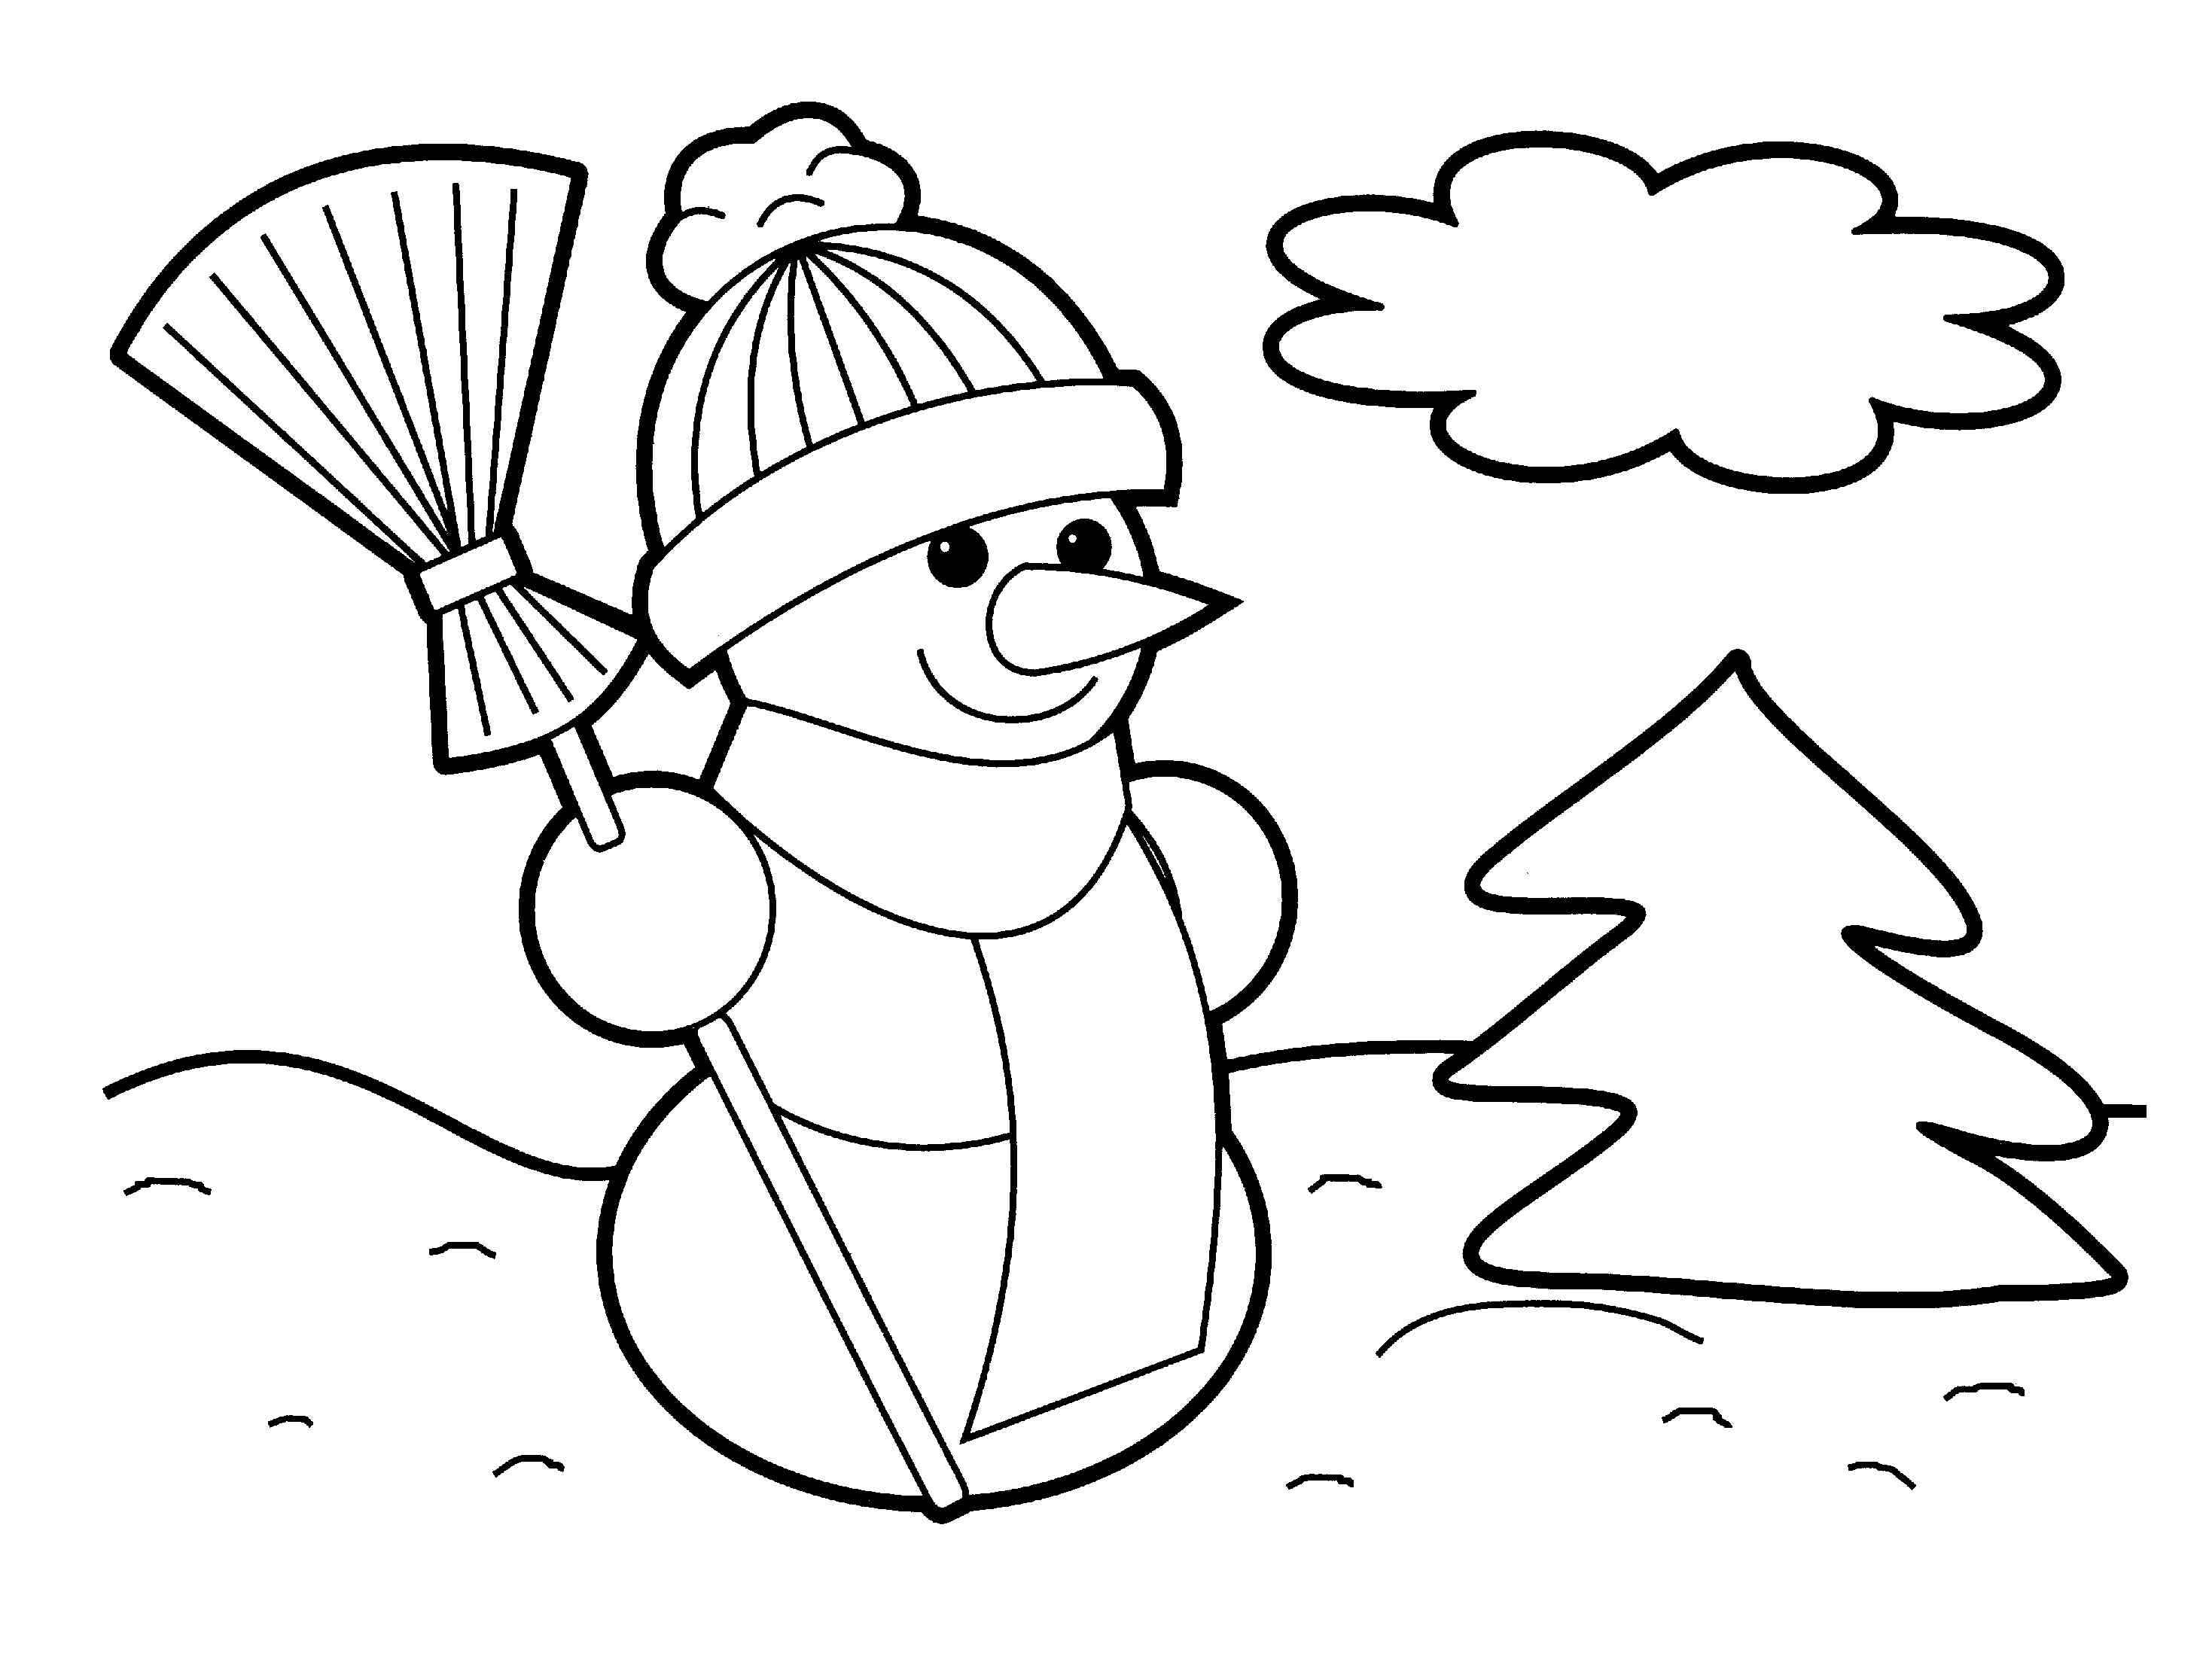 coloring pages to print out for christmas christmas angel colouring pages to printfree printable for out christmas pages to print coloring